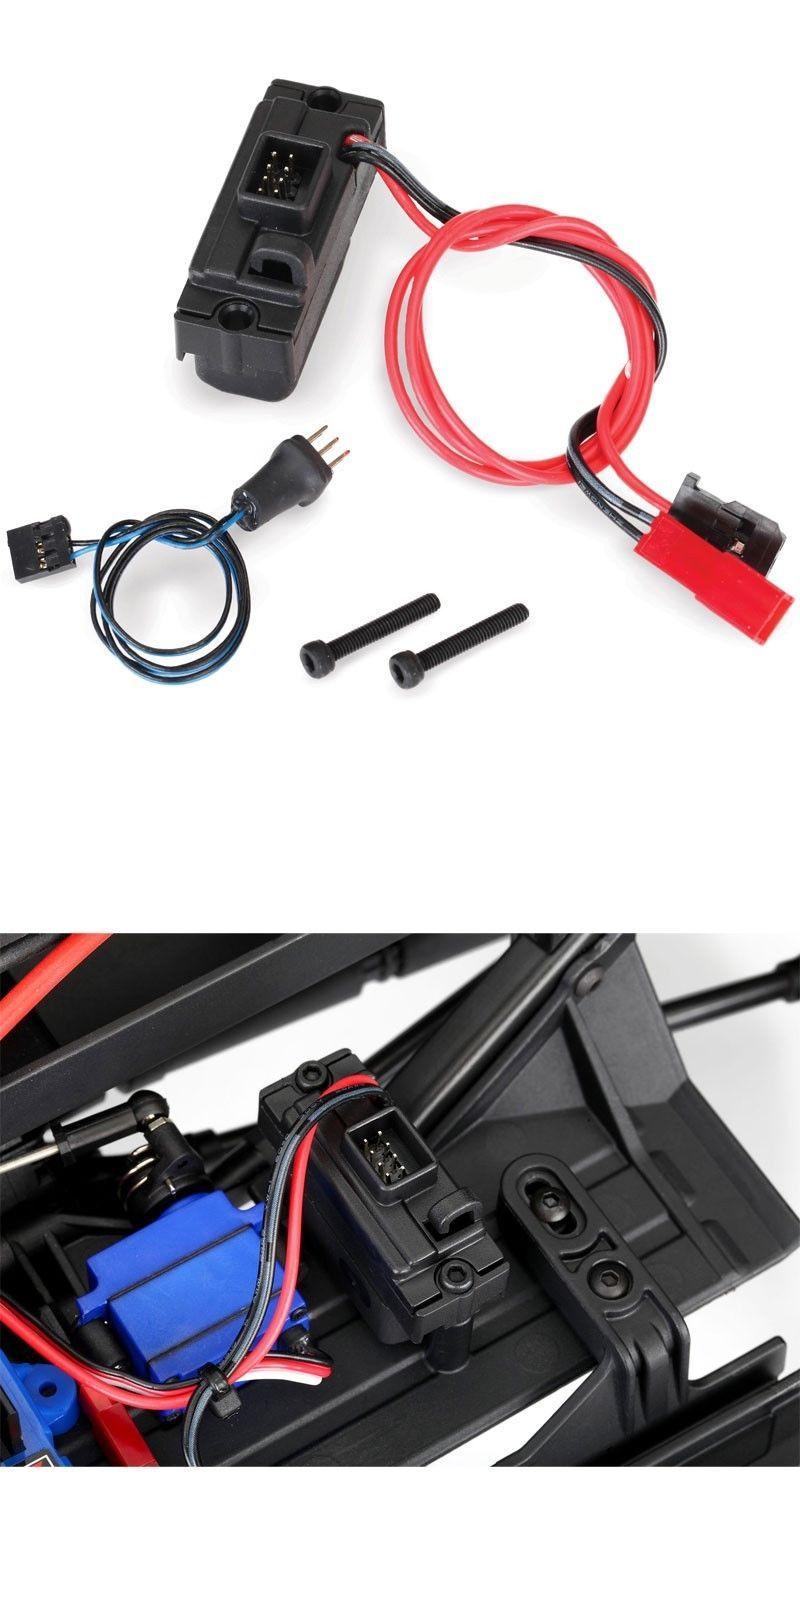 lighting and lamps 182177 traxxas 8028 trx 4 power supply and wiring harness for led lights tra8028 buy it now only 19 95 on ebay  [ 800 x 1600 Pixel ]